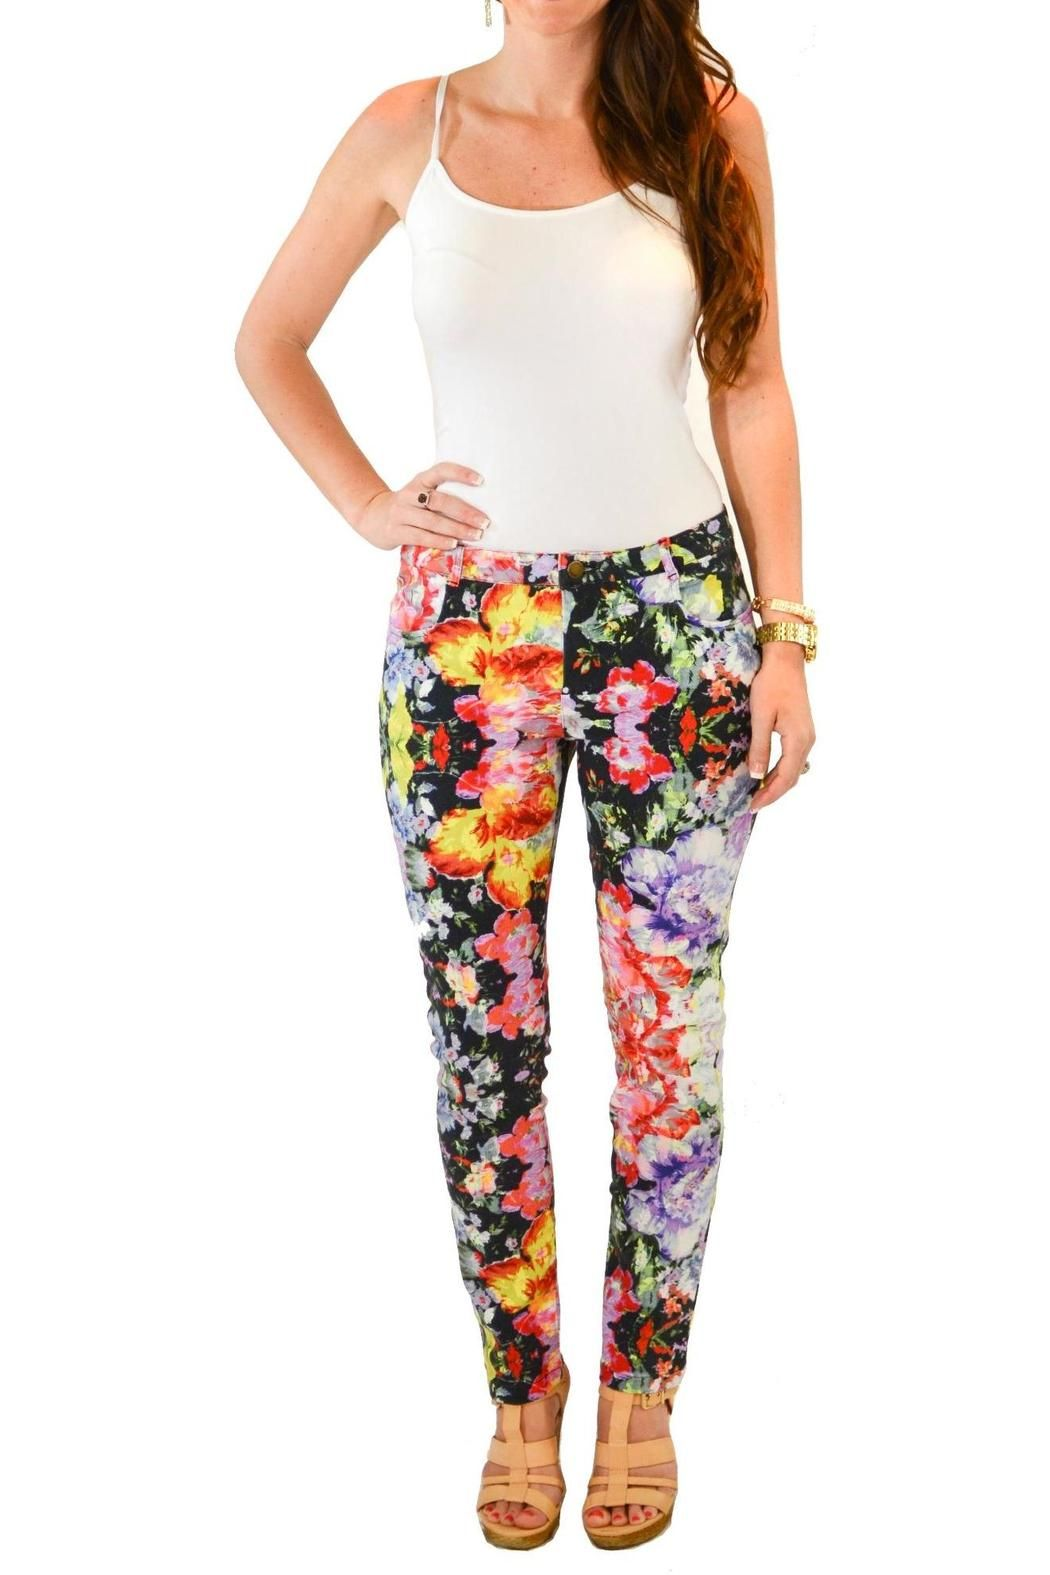 2019 year for girls- How to orange wear floral pants